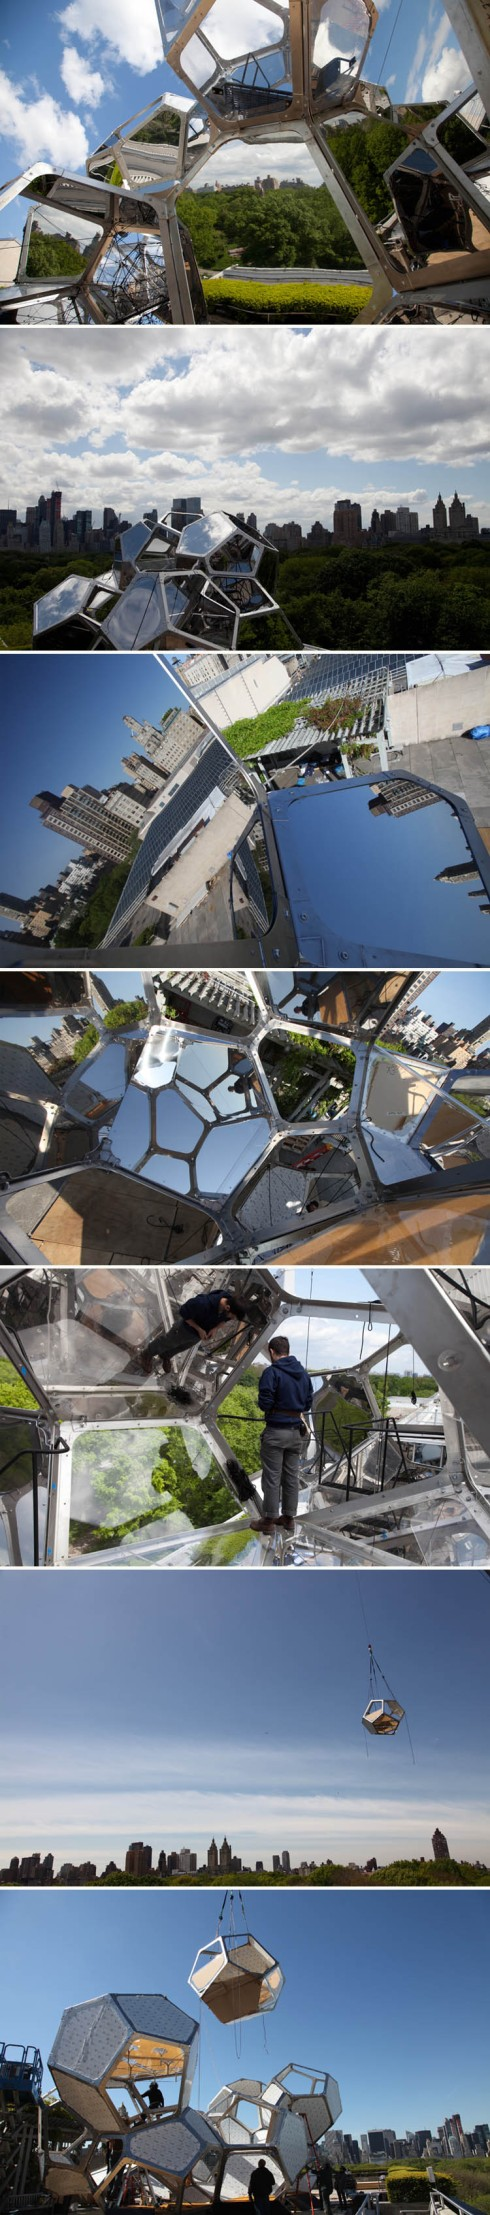 Met Roof Garden installation, Cloud City, Tomas Saraceno, cool installation, contemporary art, collabcubed